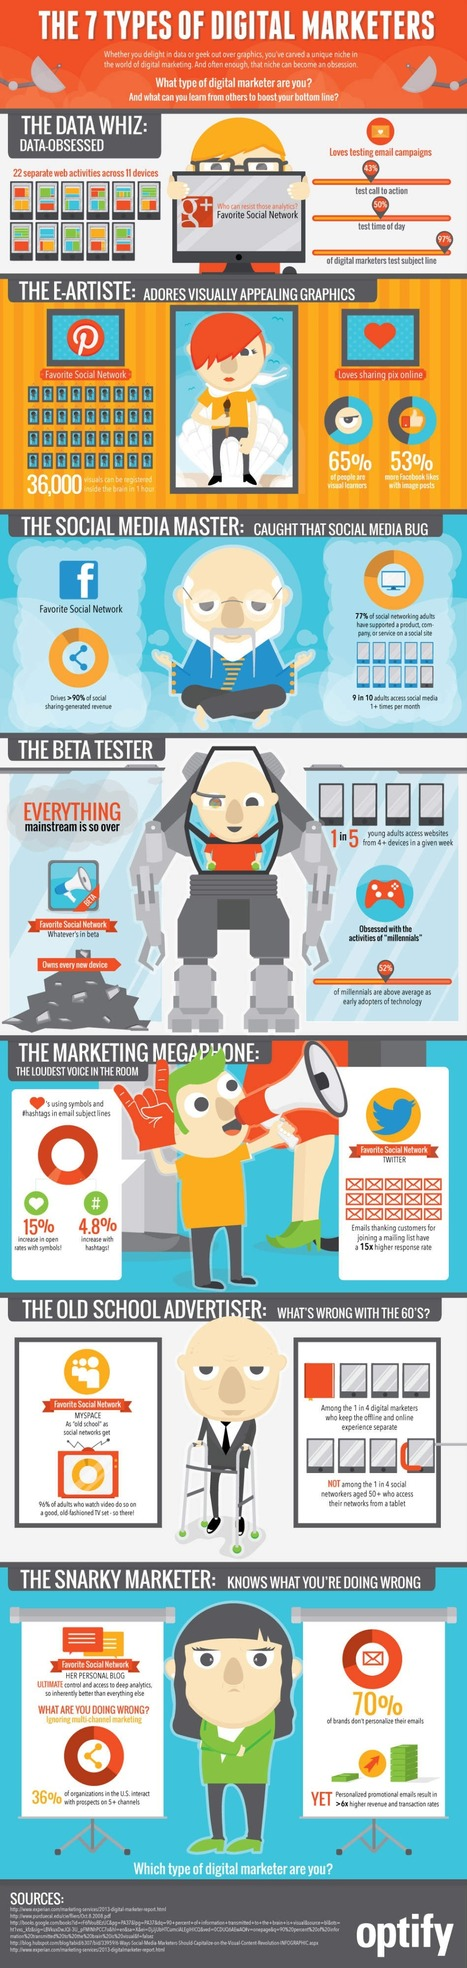 The 7 Types of Digital Marketer | Digital Marketing Trends & Insights | Scoop.it